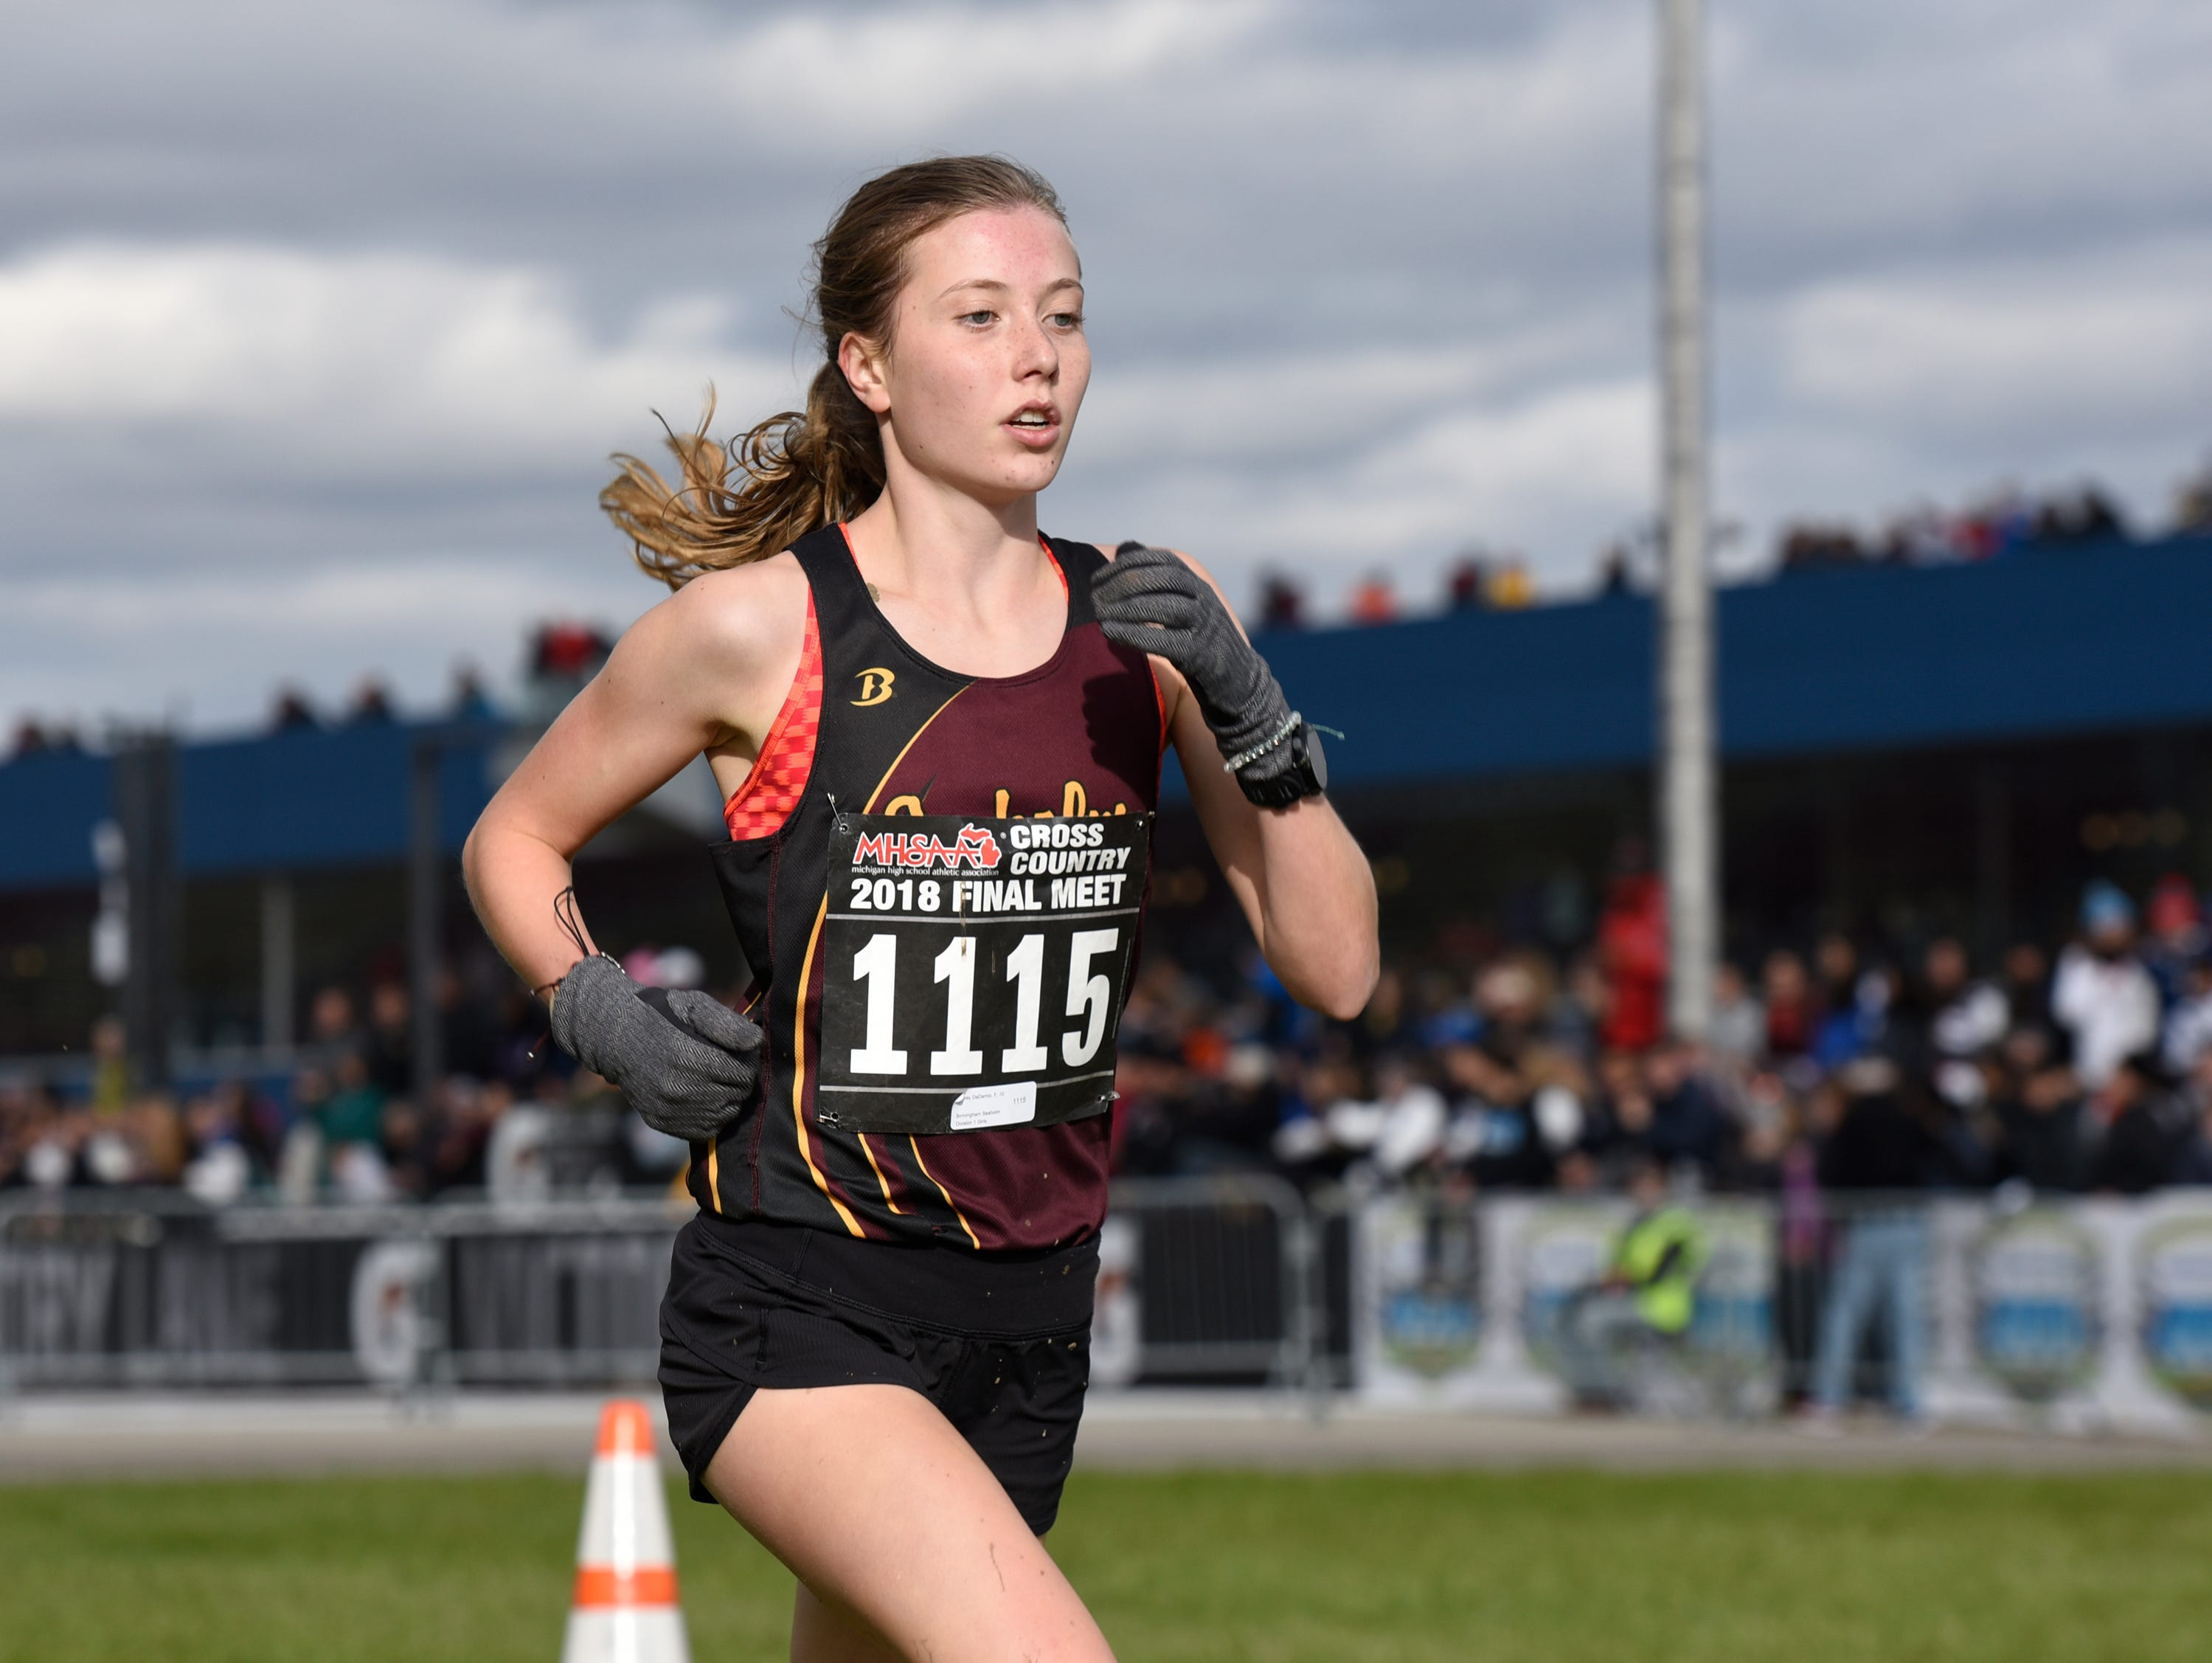 Birmingham Seaholm's Audrey DaDamio during the Division 1 2018 cross country finals at Michigan International Speedway.